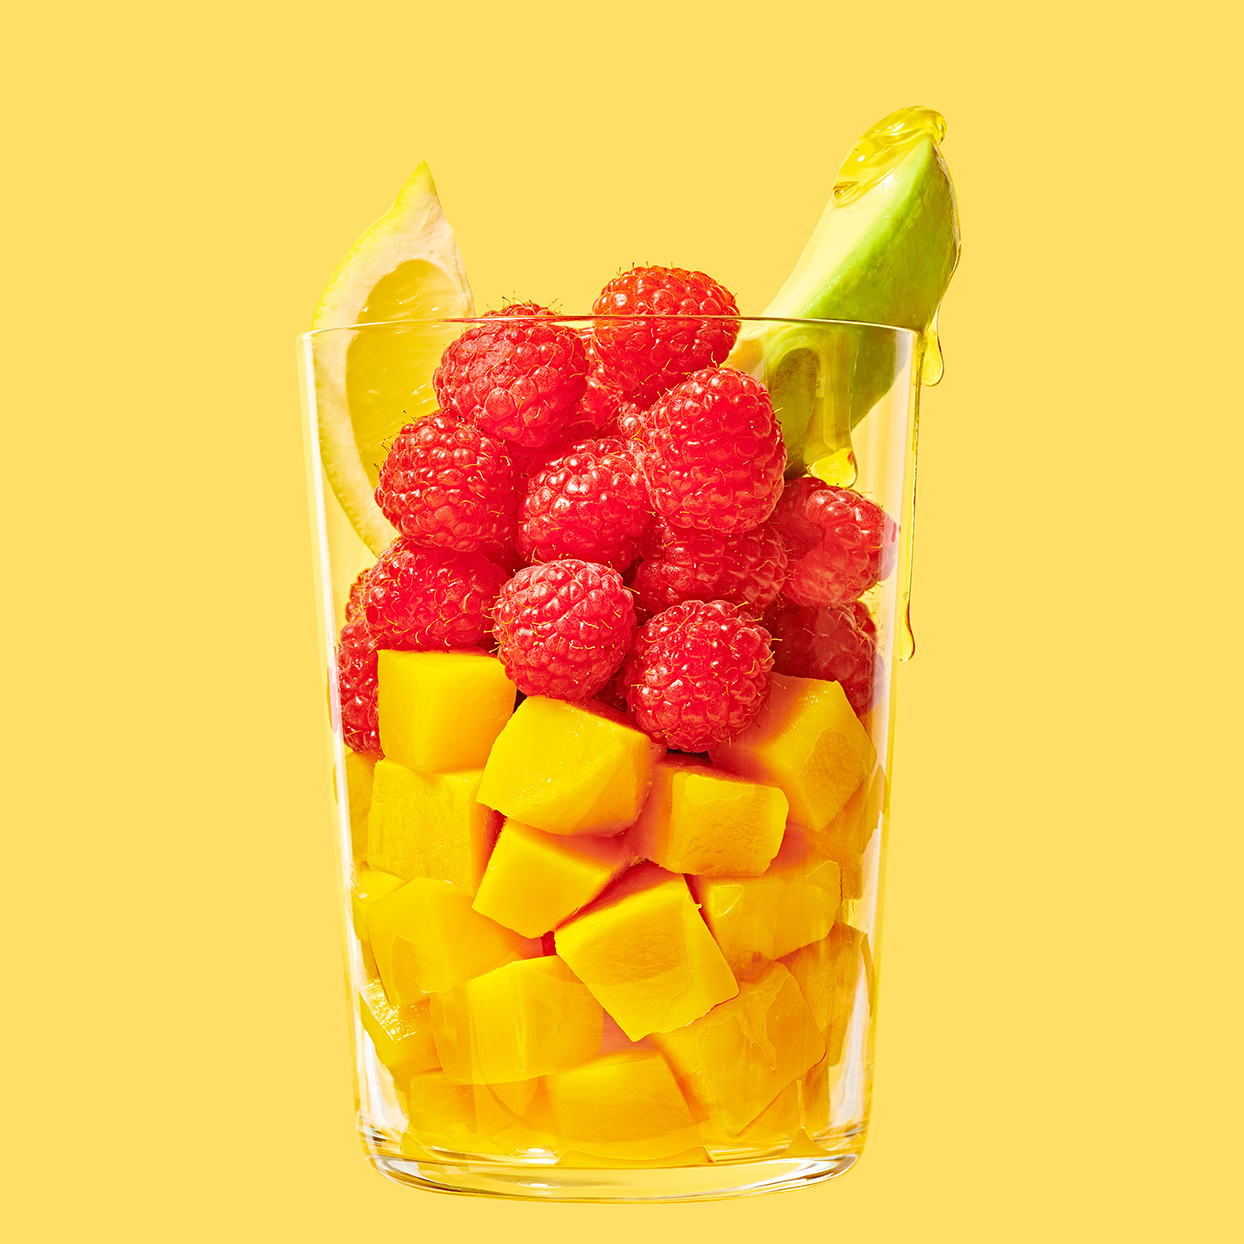 A squeeze of lemon juice adds bright flavor to this frozen fruit smoothie. Mango provides plenty of sweetness without having to add juice, but if it's too tart for you, a touch of agave will do the trick.